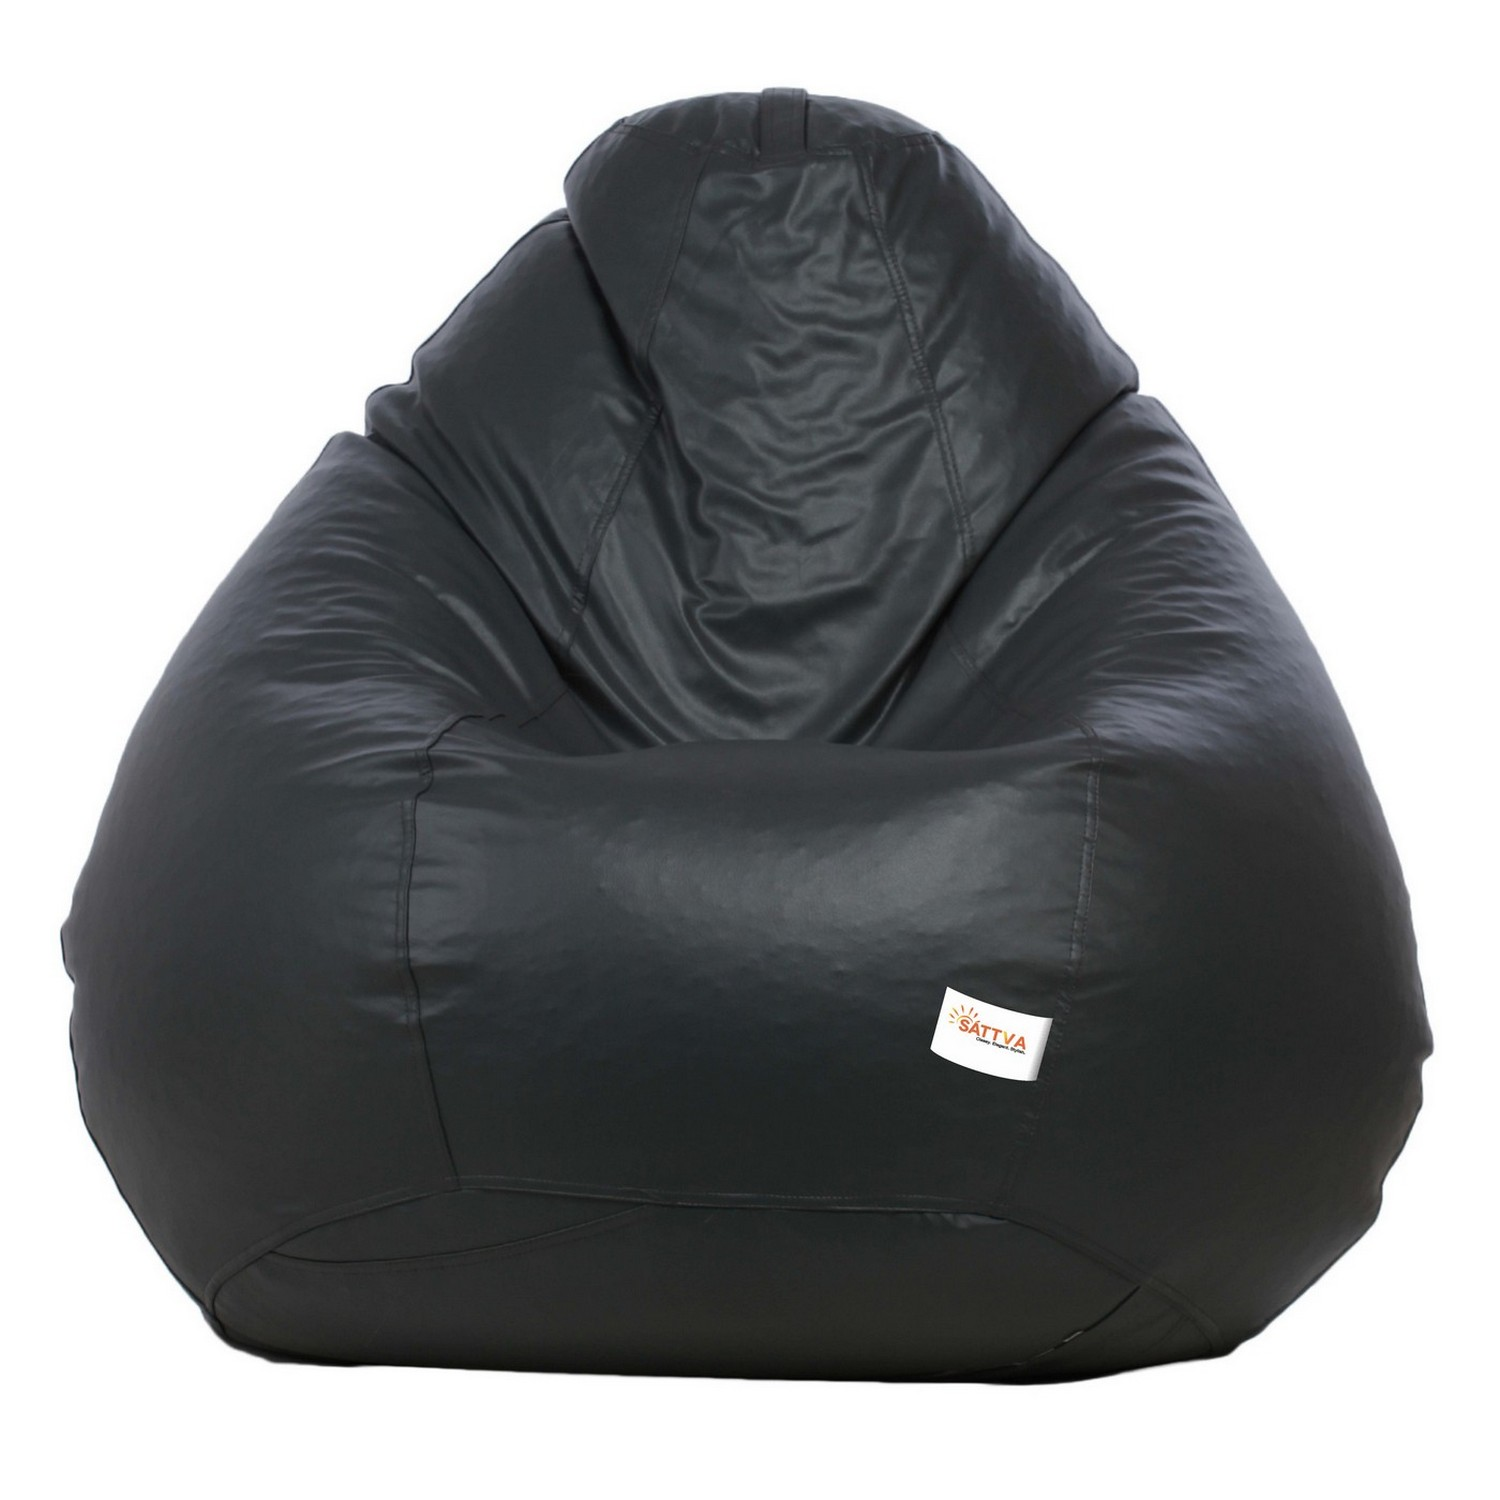 Sattva Combo Classic Bean Bag And Round Foostool-(Filled) Black With Pink Piping - XL (Grey with pink Piping, XL)